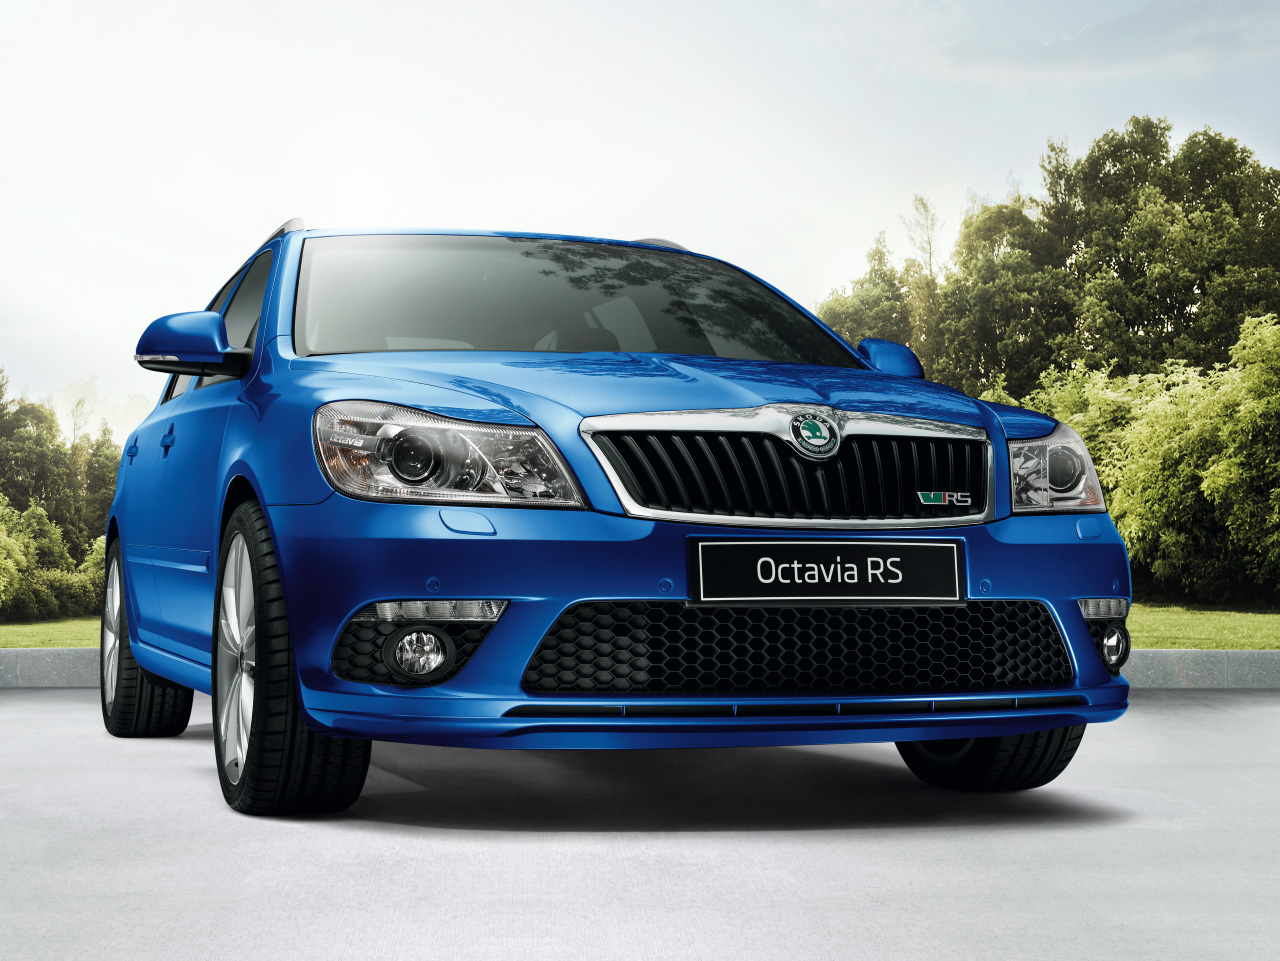 2019 Skoda Octavia Combi RS photo - 5